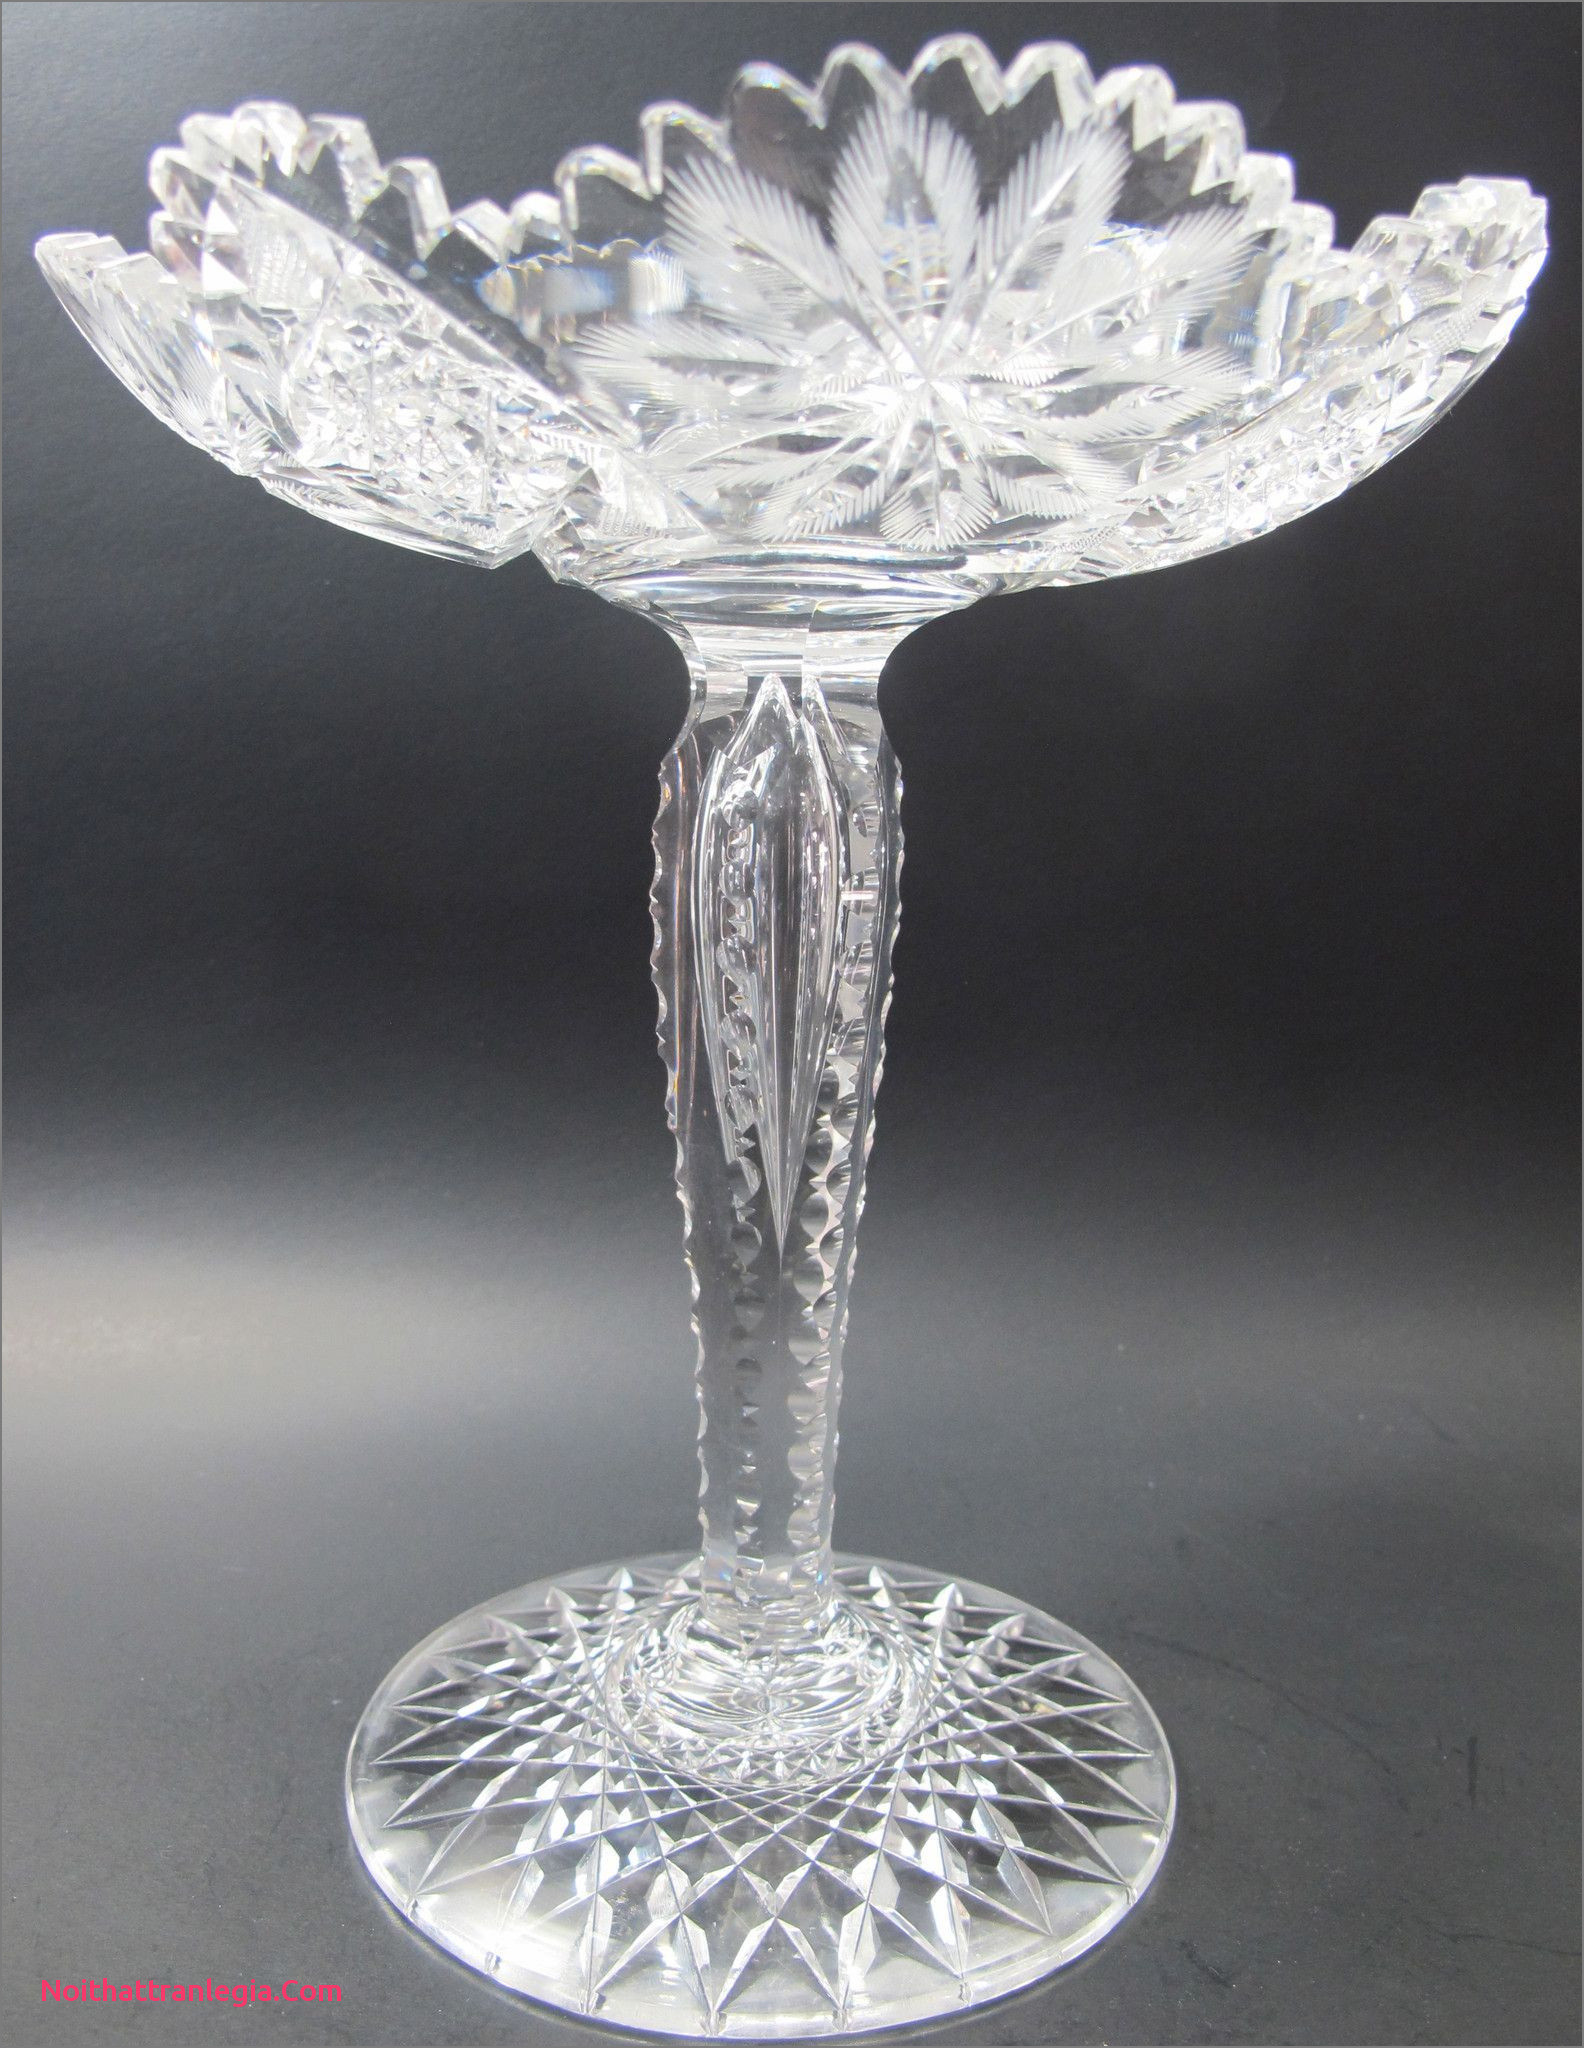 24 Lead Crystal Vase Value Of 20 Cut Glass Antique Vase Noithattranlegia Vases Design within Fering This Abp Antique Cut Glass Pote From the American Brilliant Period 1886 1916 9 5